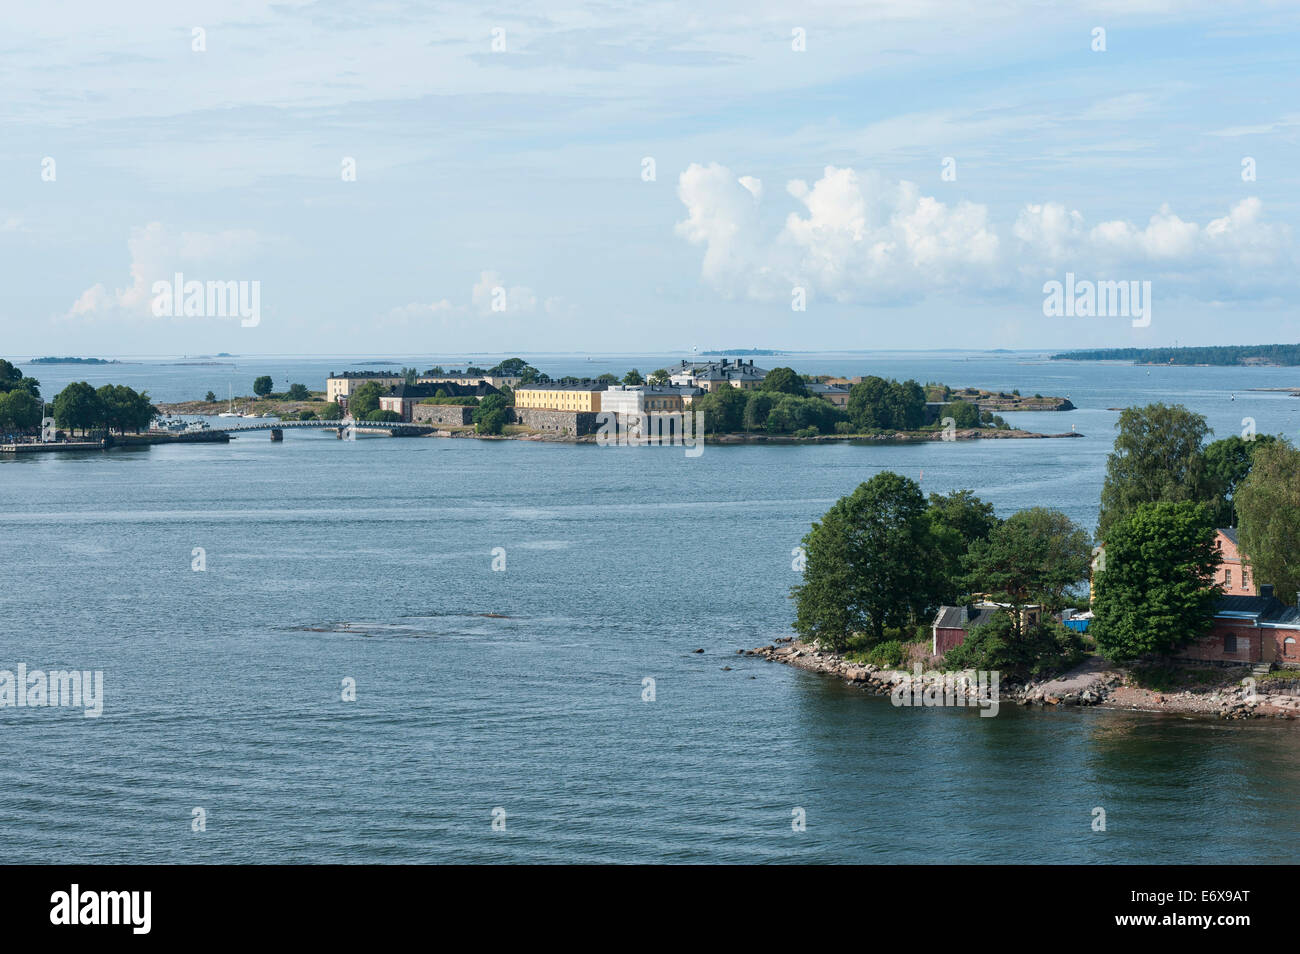 Islands off Helsinki, Suomenlinna Fortress at the back, UNESCO World Heritage Site, Helsinki, Finland - Stock Image